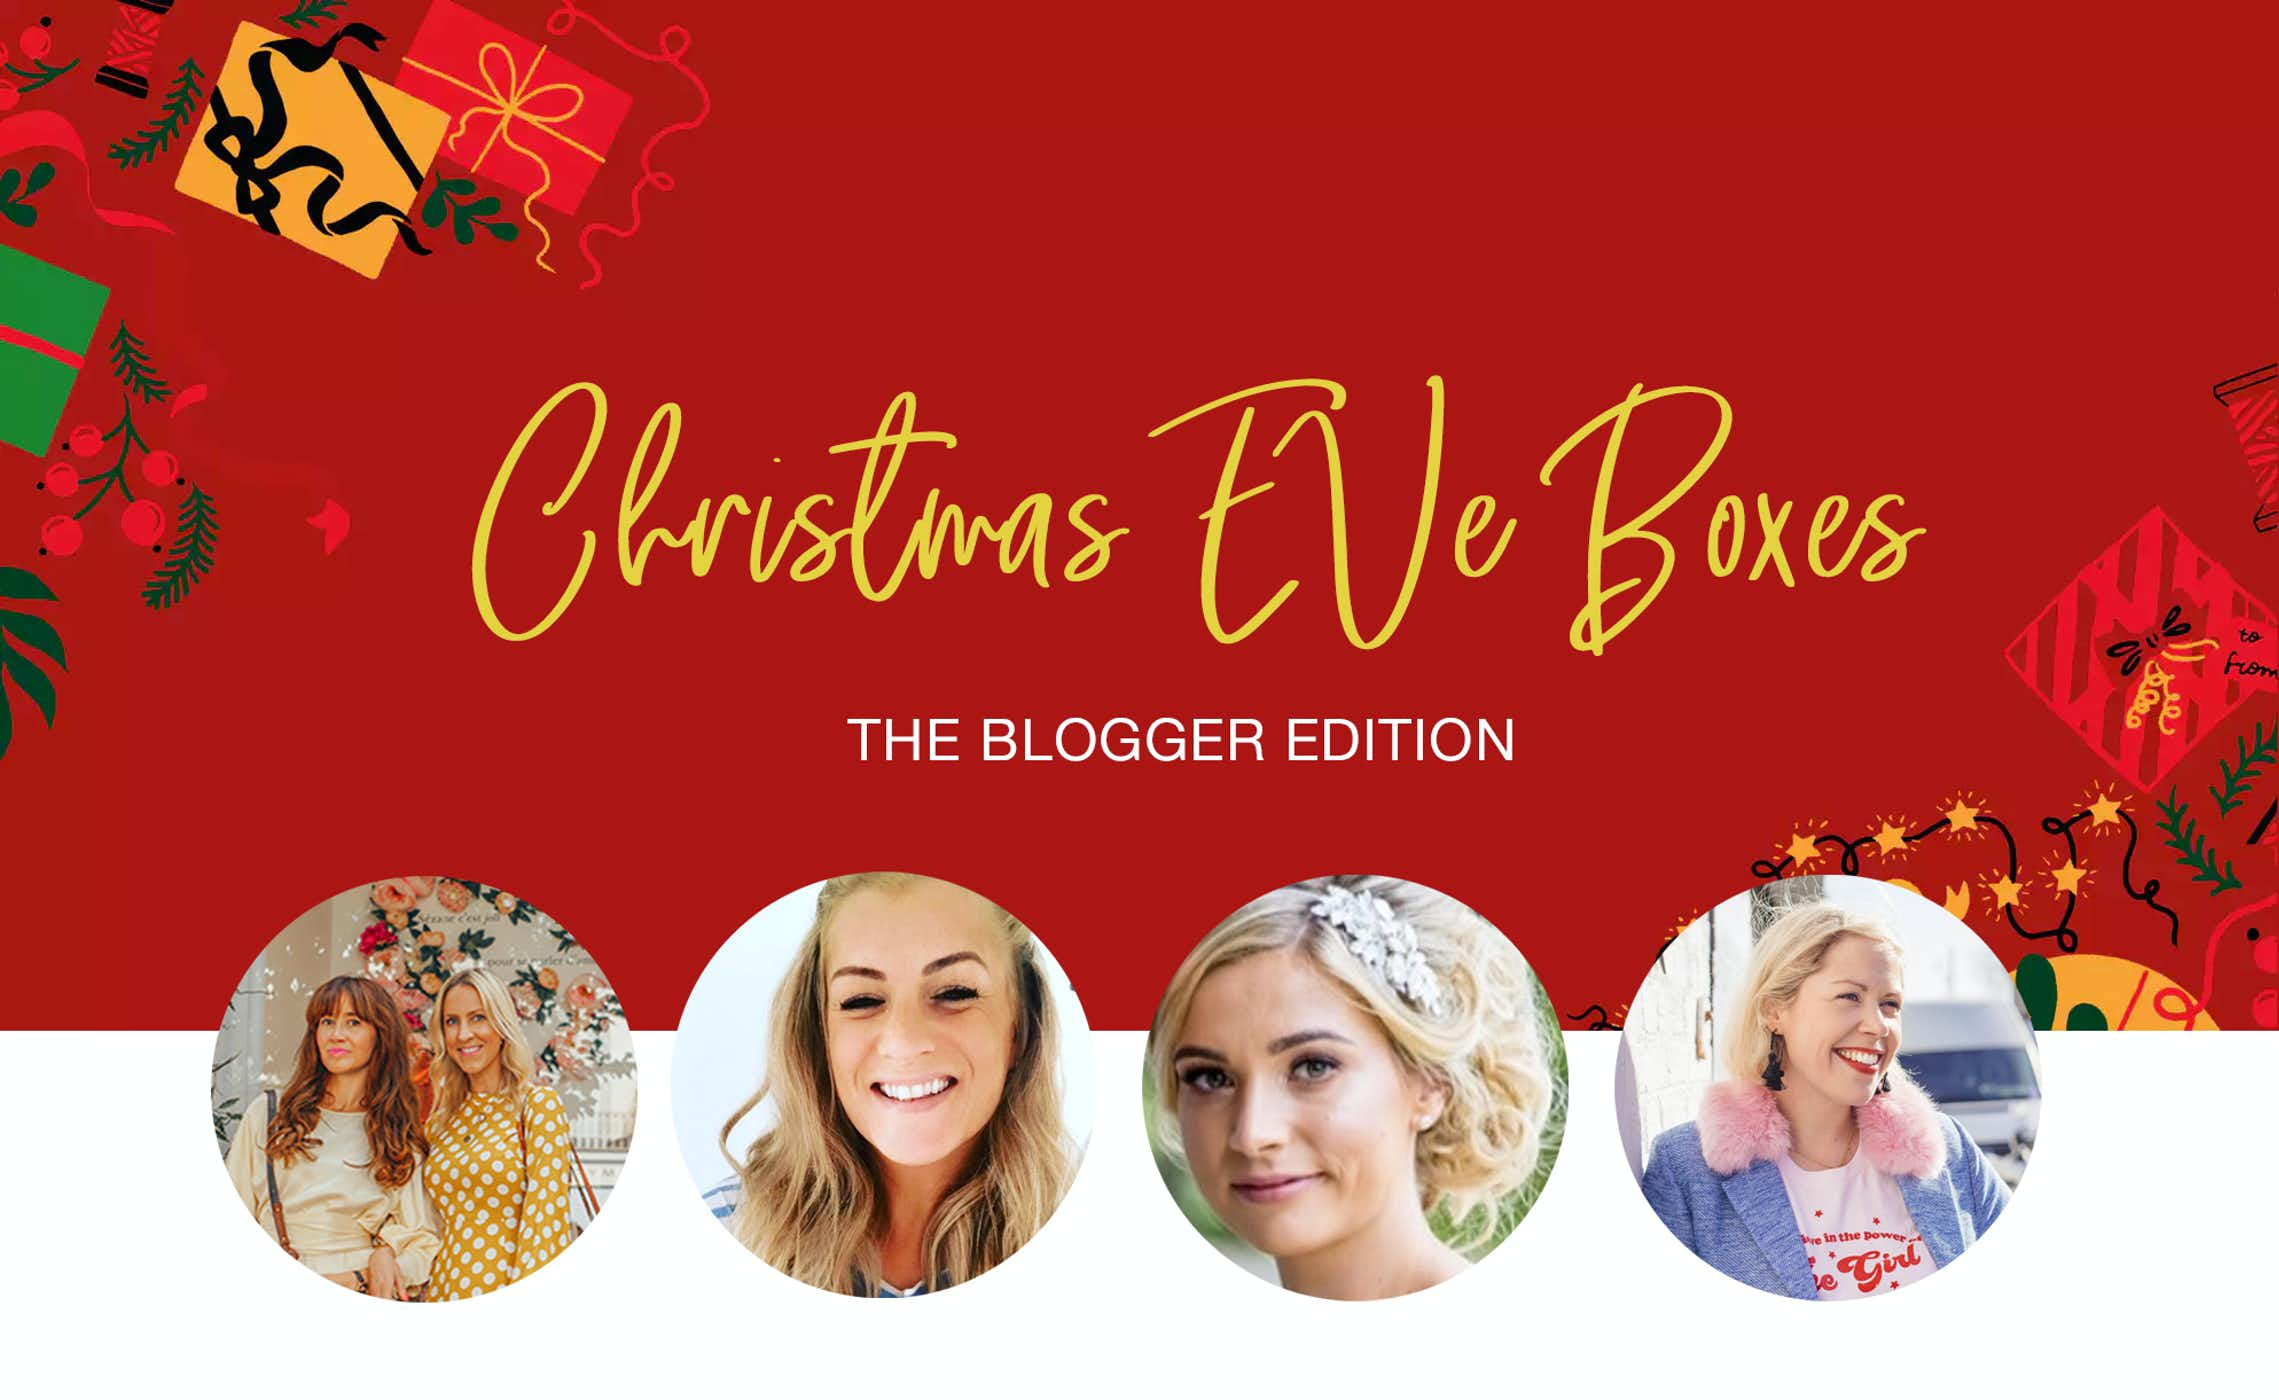 595c427903b A few of our favourite bloggers let us know what they d put in their Christmas  Eve boxes